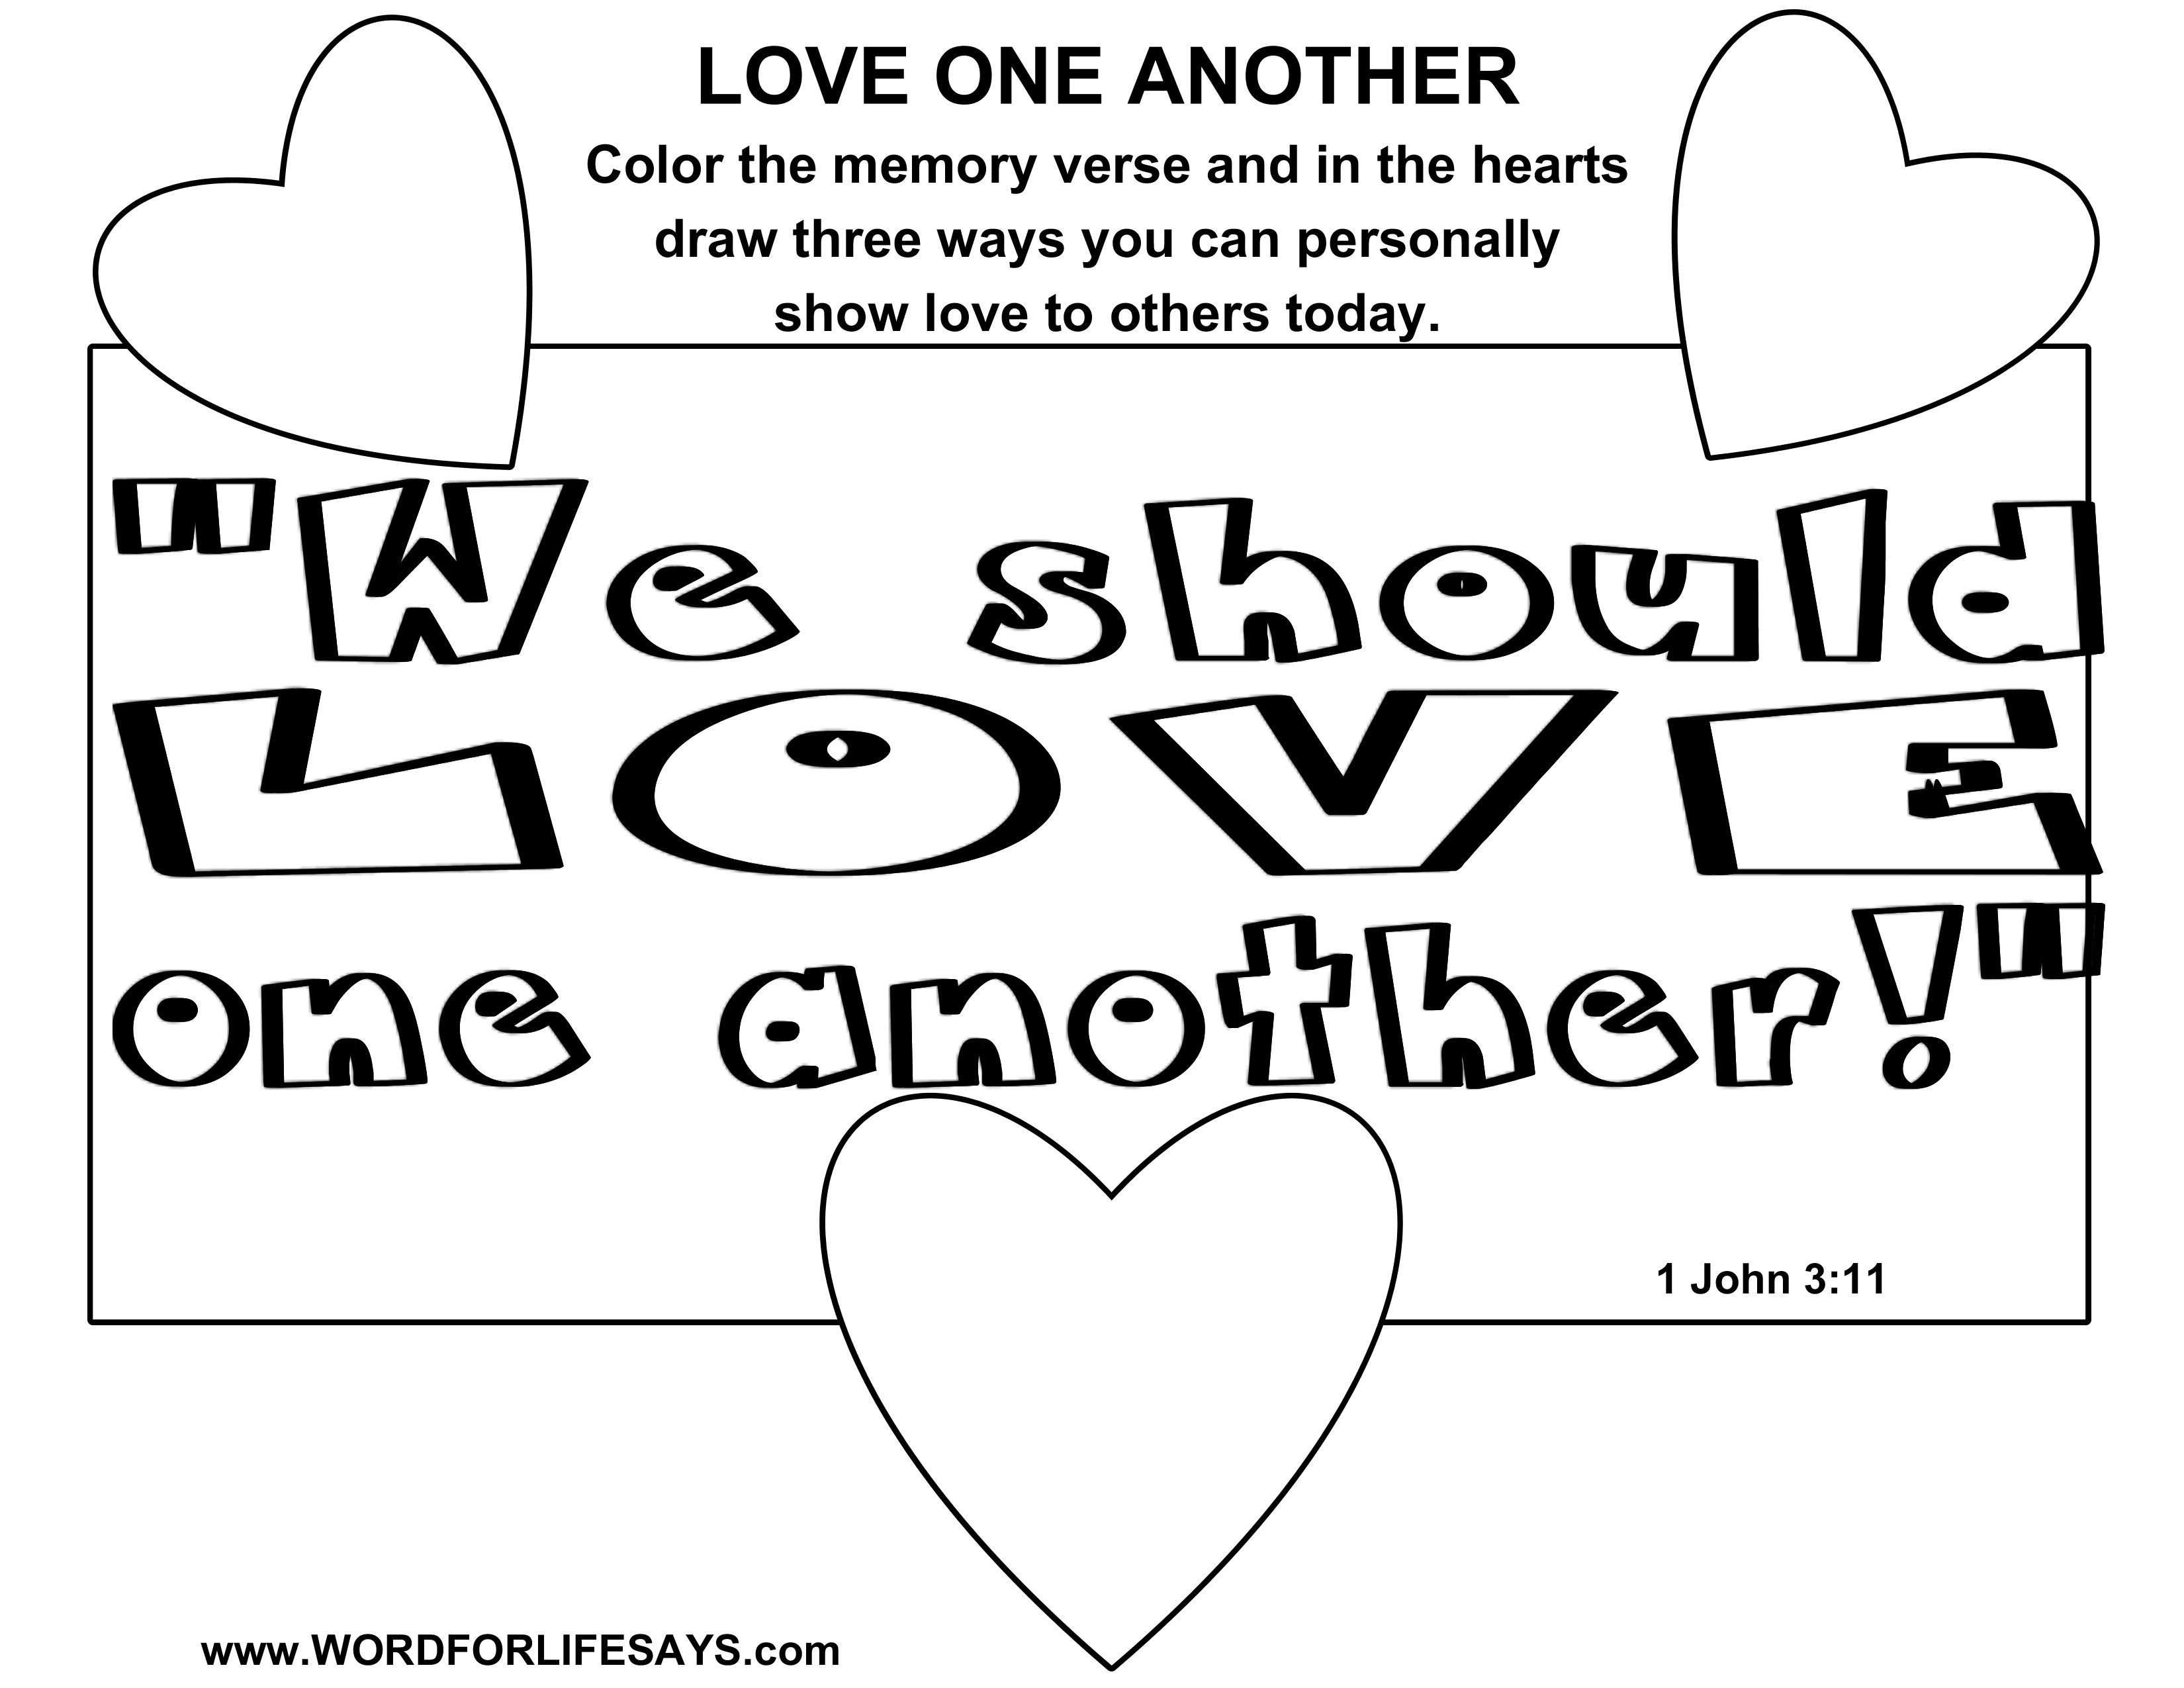 Love One Another Sunday School Lesson 1 John 3 11 24 April 12